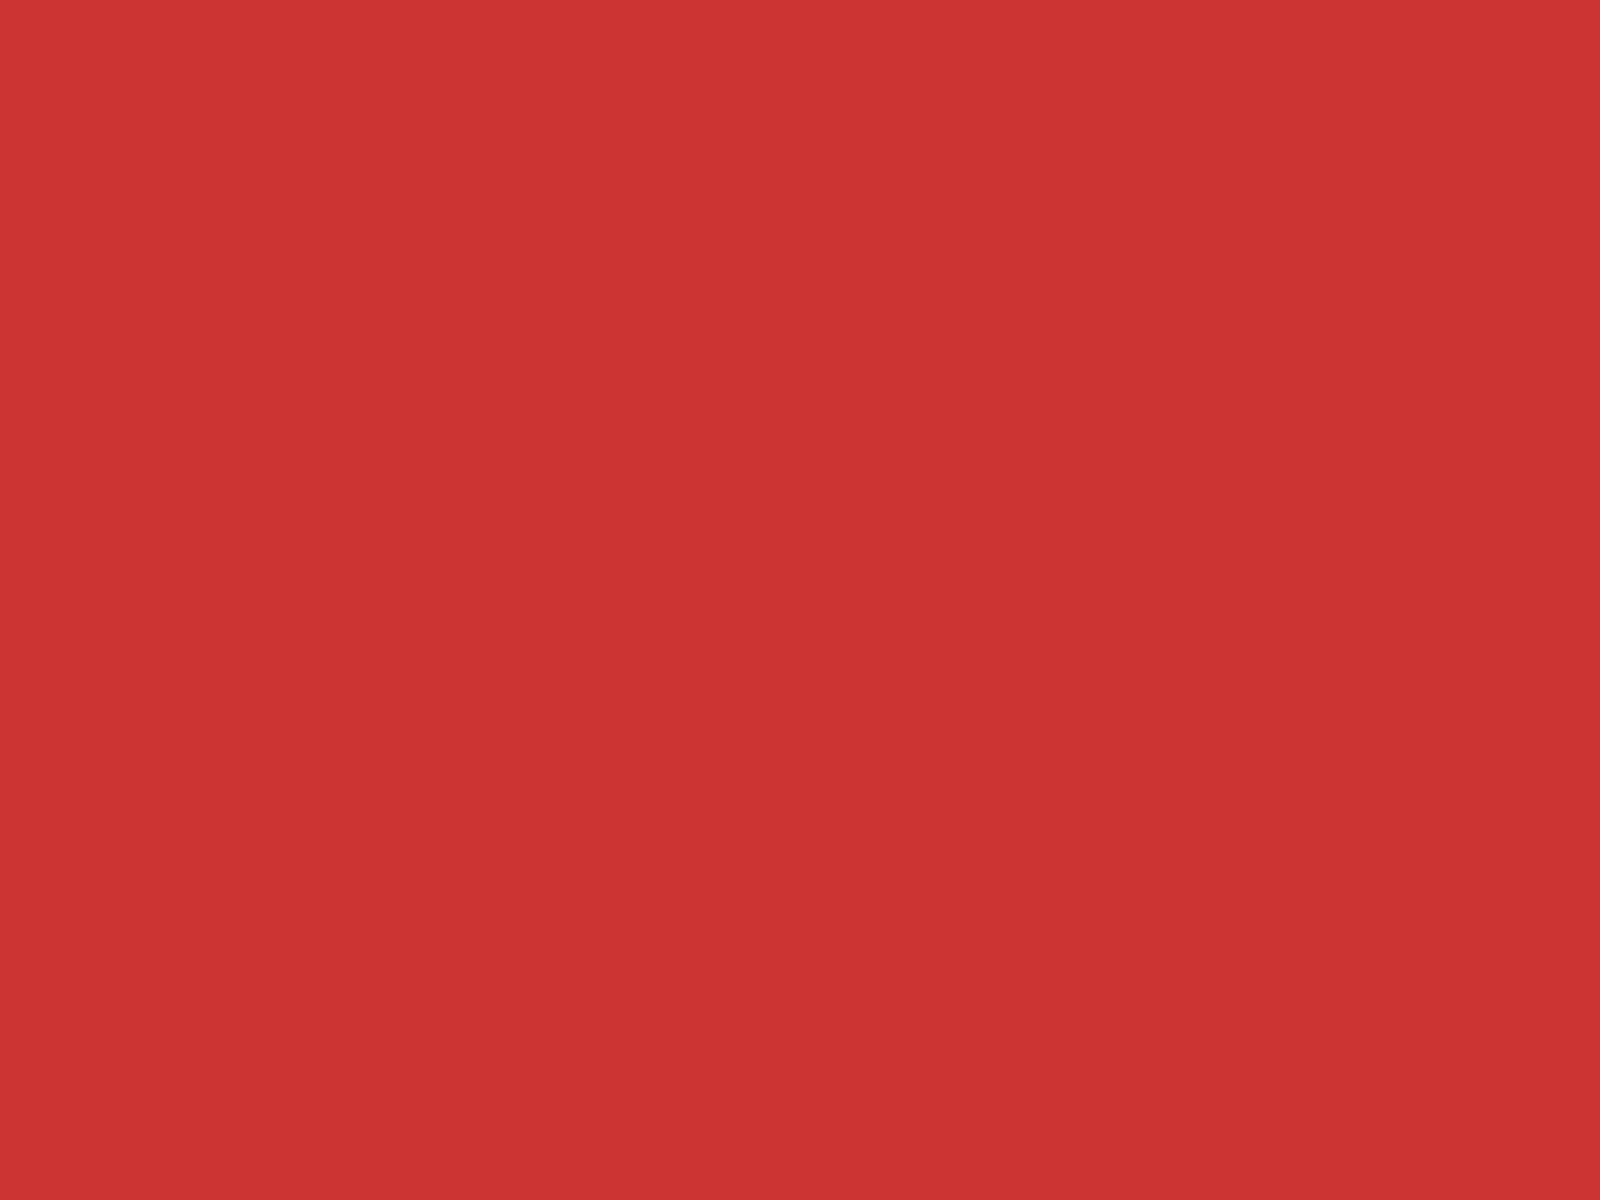 1600x1200 Persian Red Solid Color Background